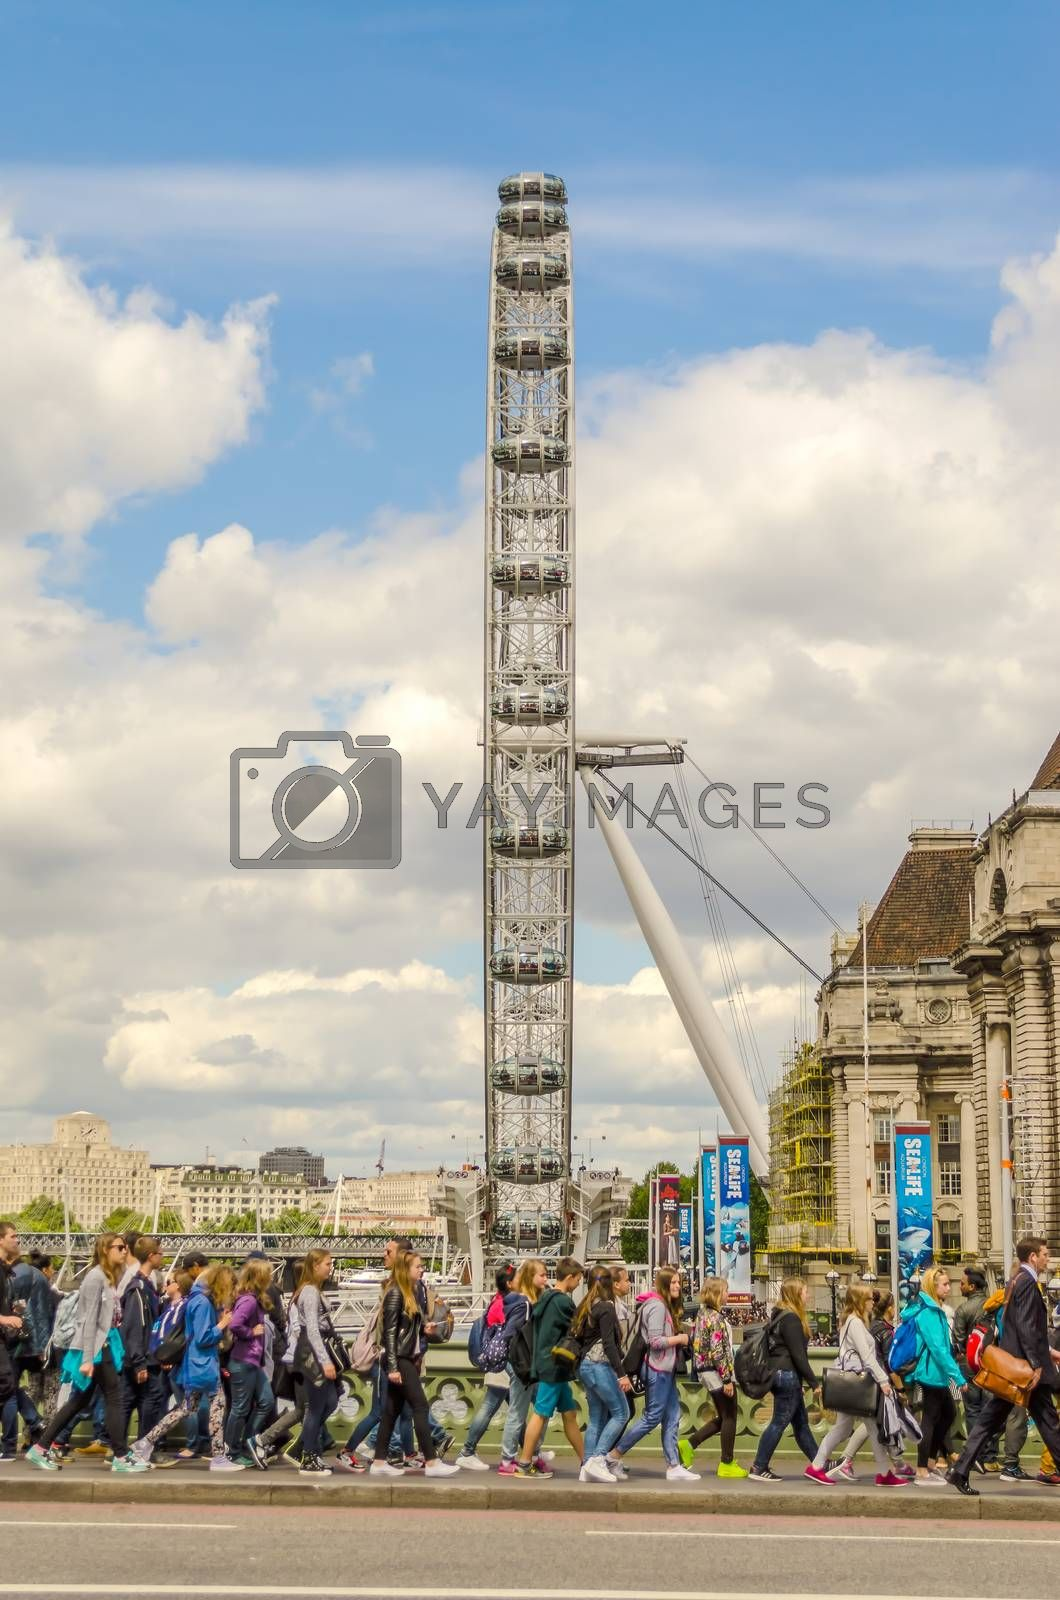 LONDON - MAY 28: Tourists on Westminster Bridge with London Eye on background, May 28, 2015. The ferris wheel is 135 metres (443 ft) tall and the wheel has a diameter of 120 metres (394 ft)